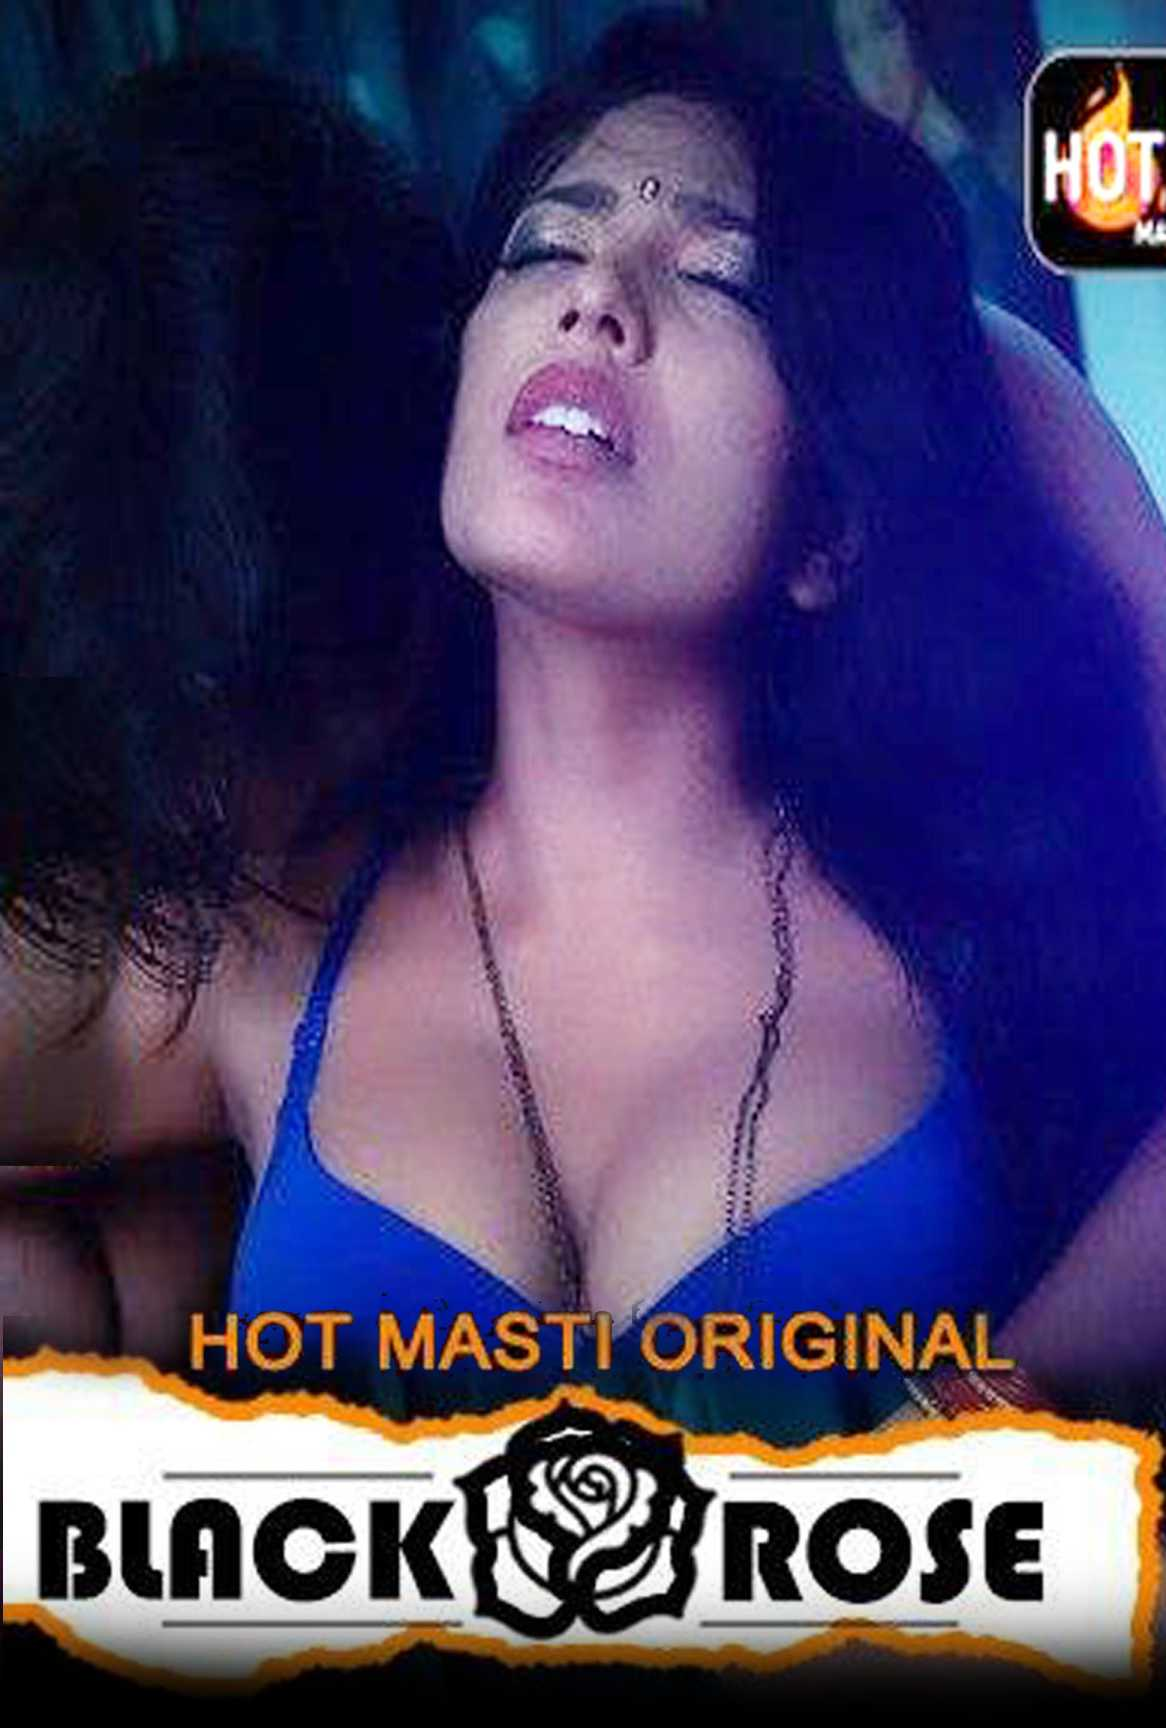 Black Rose 2020 S01E02 Hindi HotMasti Original Web Series 720p HDRip 160MB Download